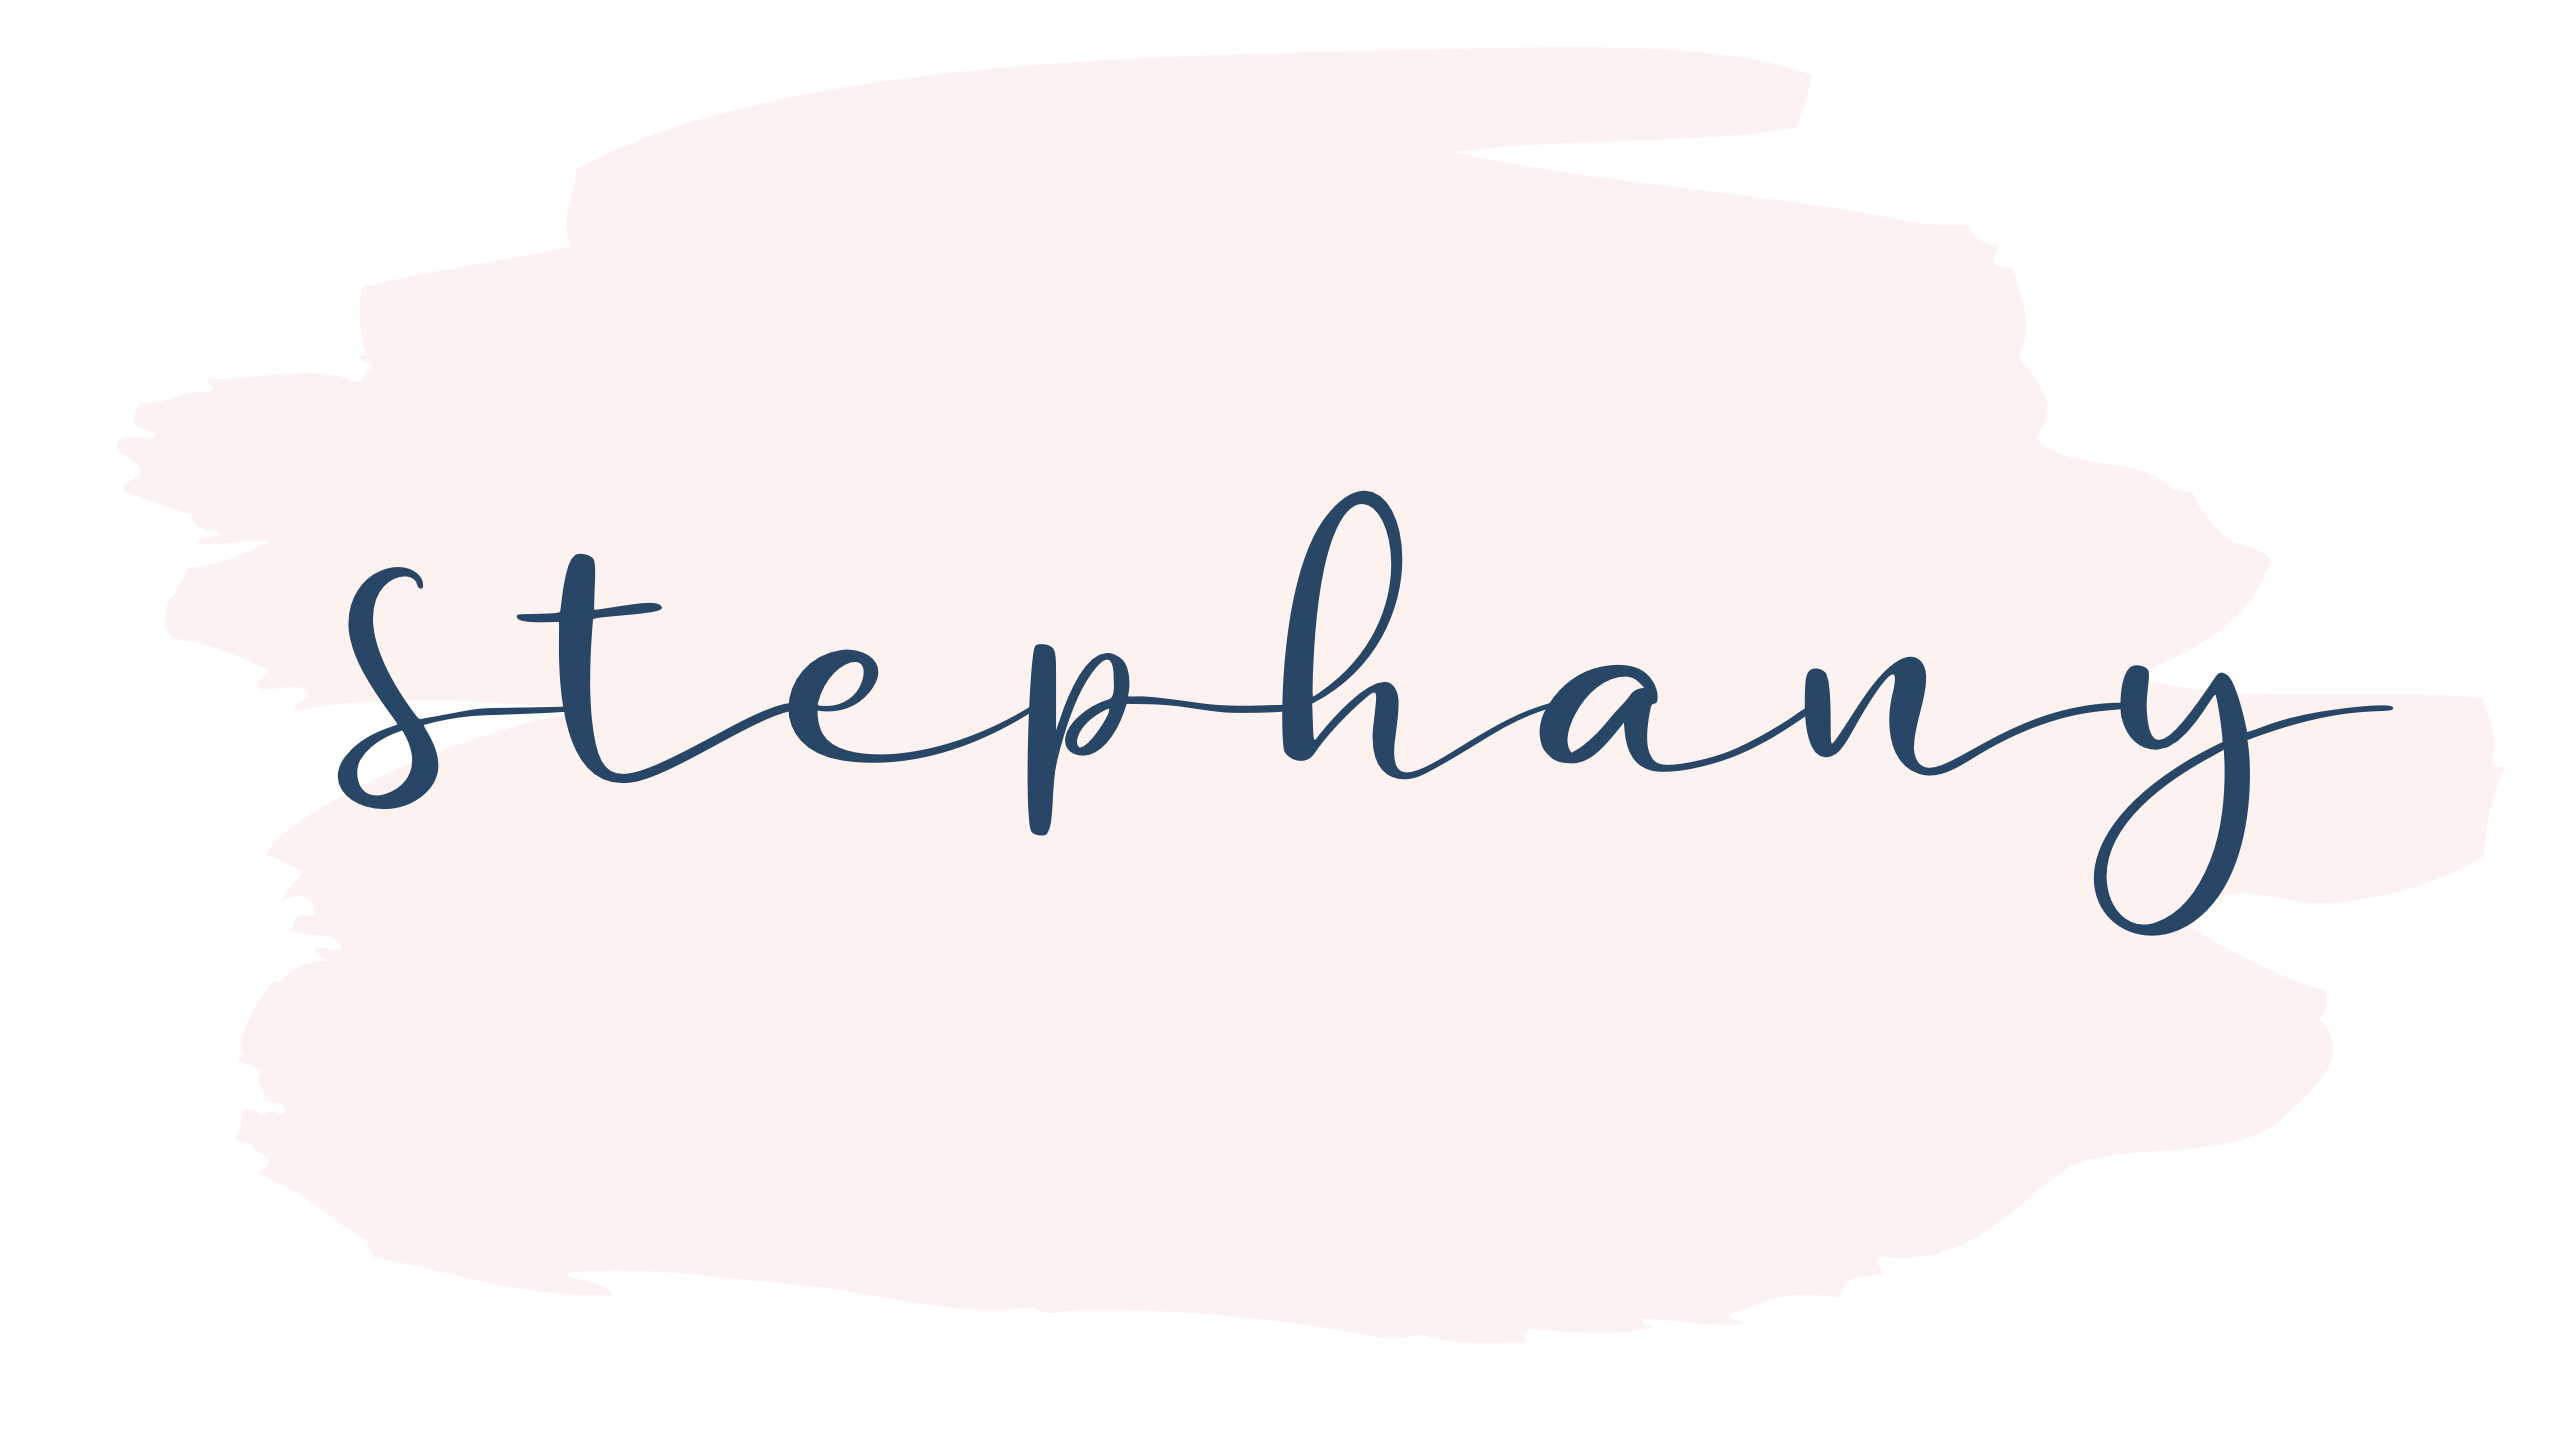 Stephany Dedman